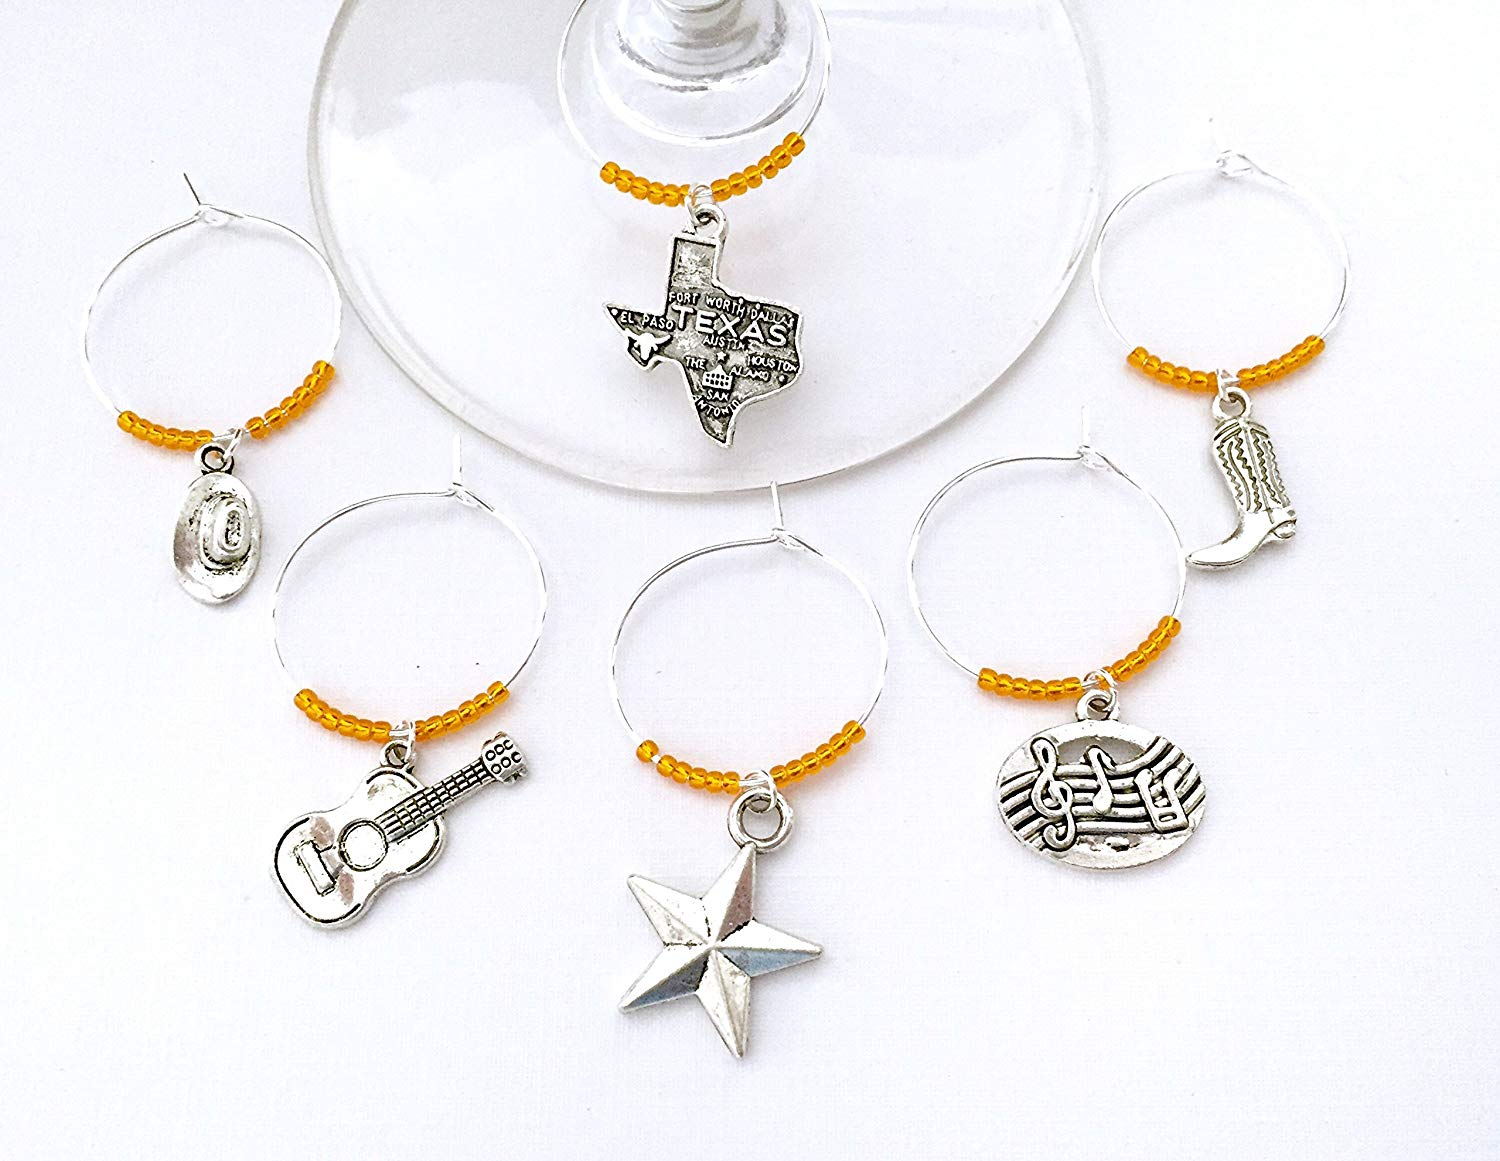 Austin Texas Wine Charms. Inspired by Austin Music and Country scene. Charms include Texas Charm, Guitar, Cowboy Hat, Cowboy Boots, Music Notes, and Texas Star. Set of 6.